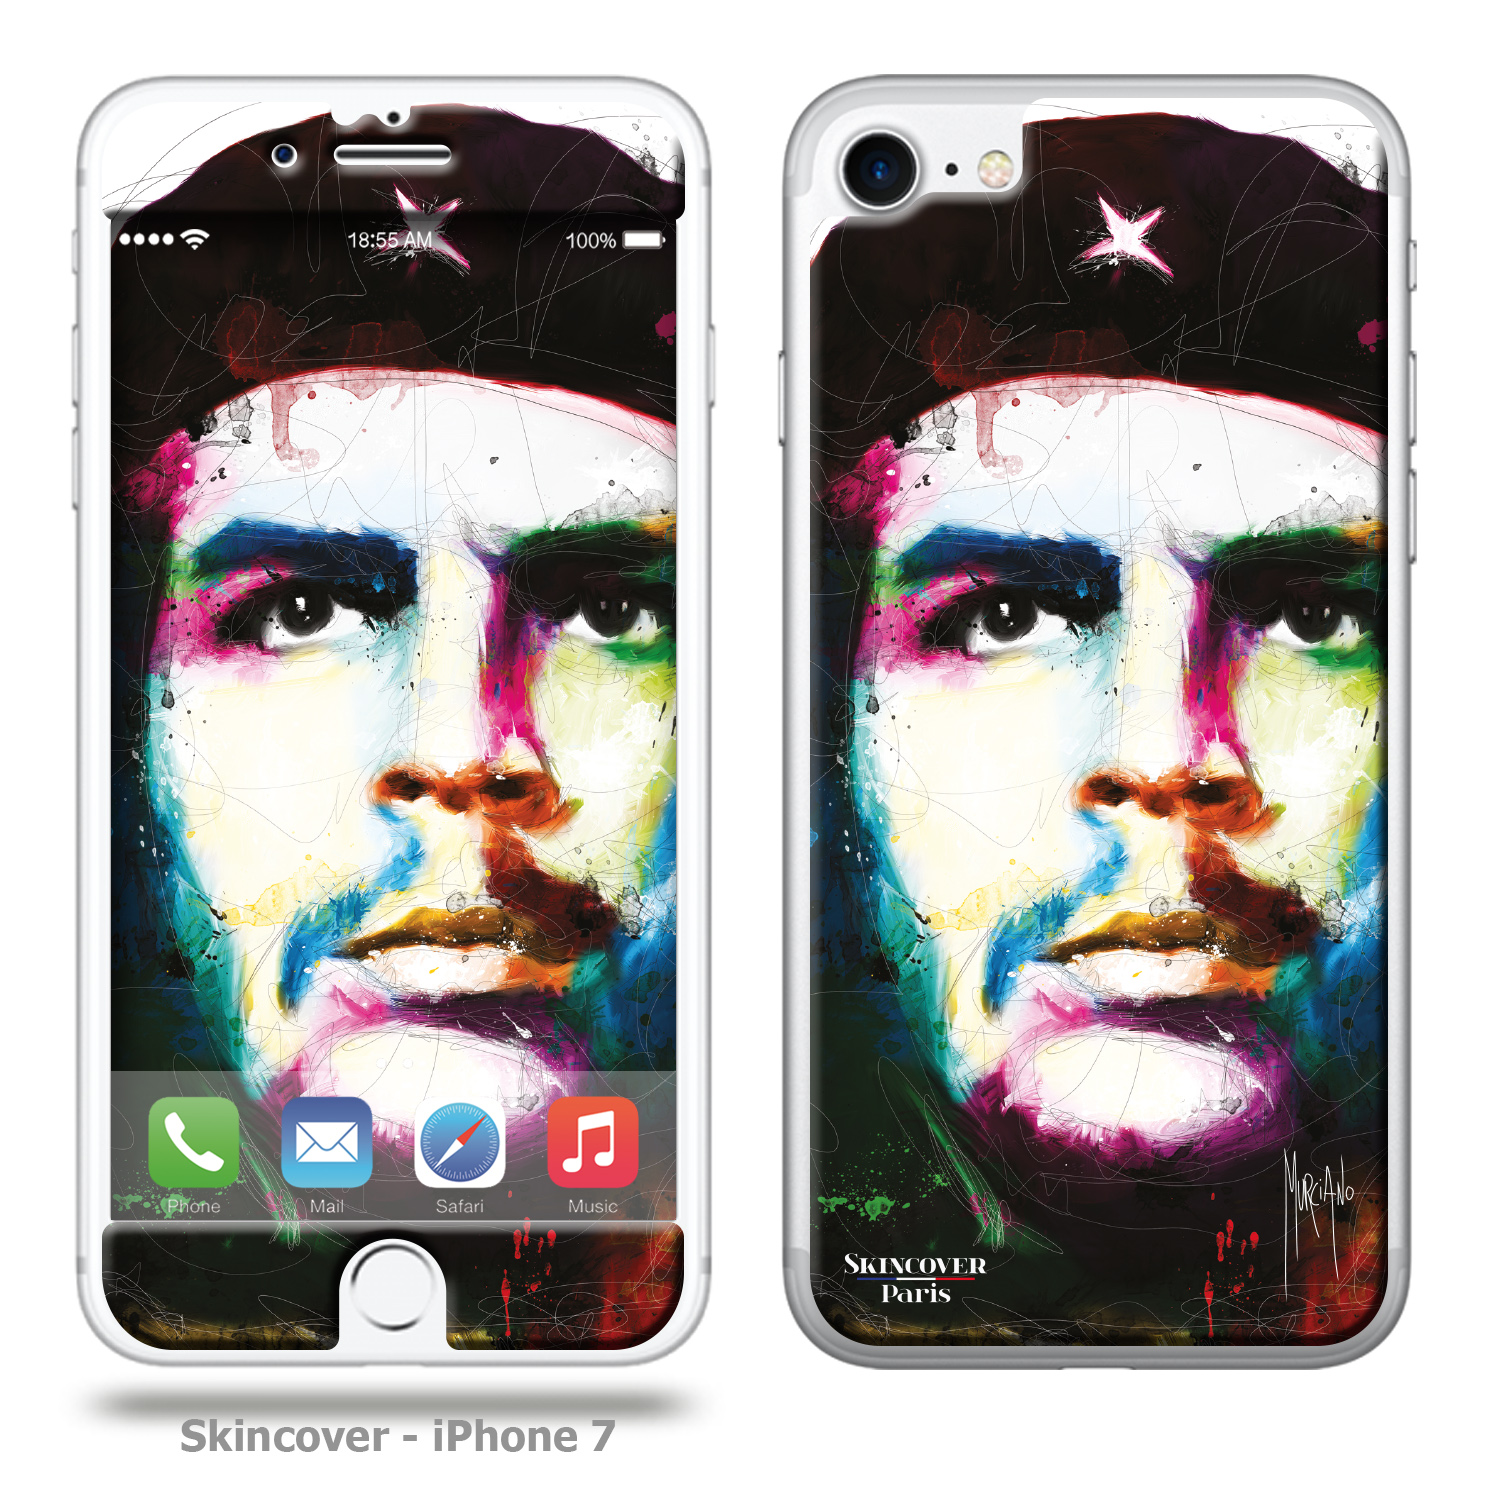 Skincover Che Guevara Iphone 7 Murciano